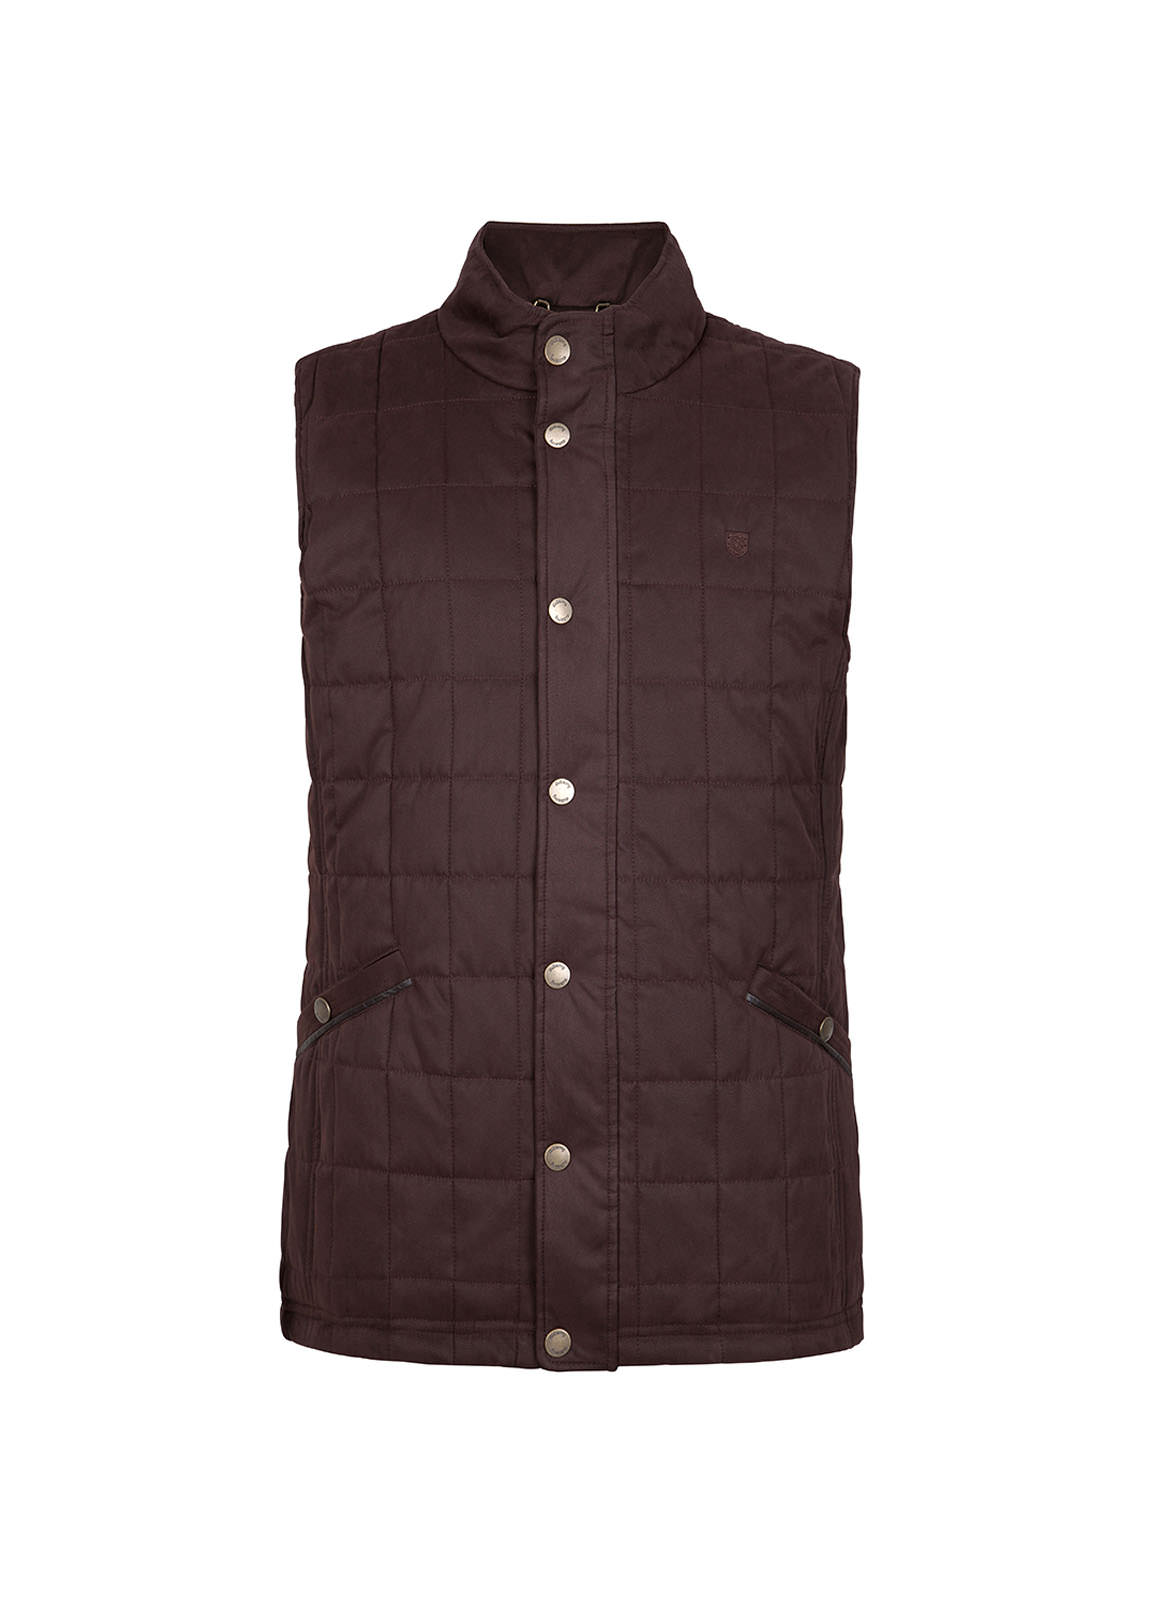 Dubarry_ Yeats Quilted Gilet - Chestnut_Image_2